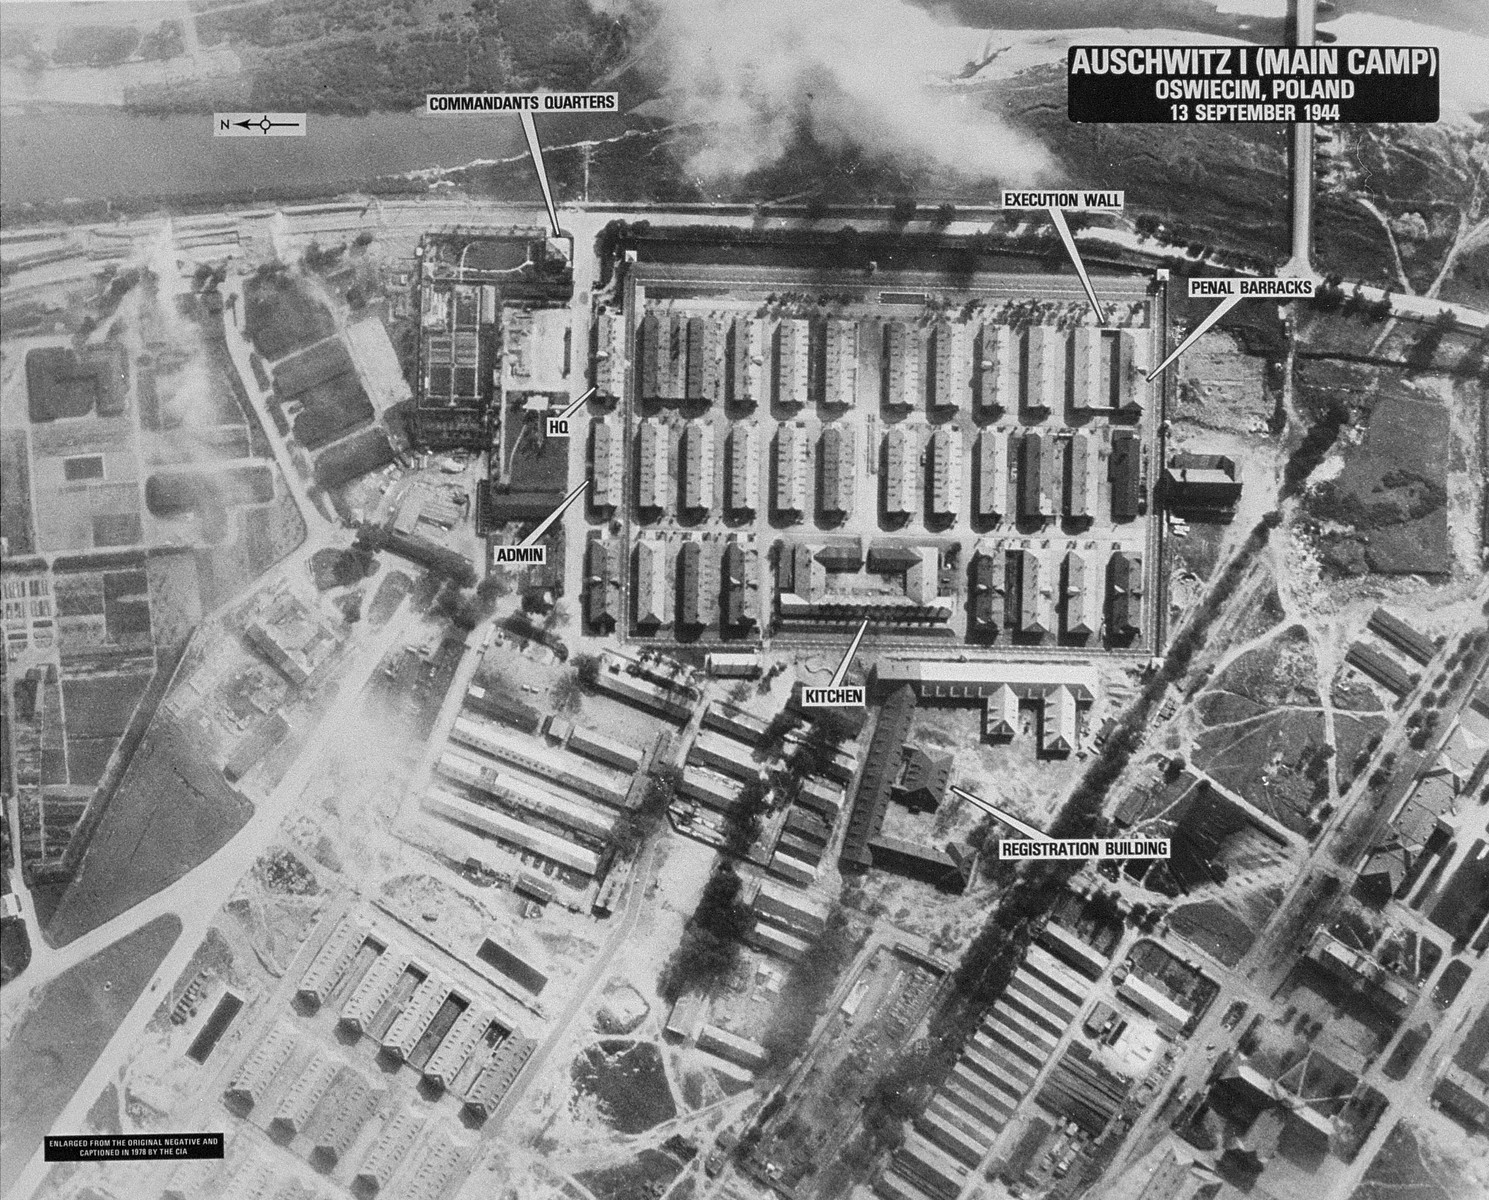 "An aerial reconnaissance photograph of the Auschwitz concentration camp showing the Auschwitz I camp. Mission:  464 BG:4M97;  Scale: 1/23,000;  Focal Length: 12"";  Altitude: 23,000'."